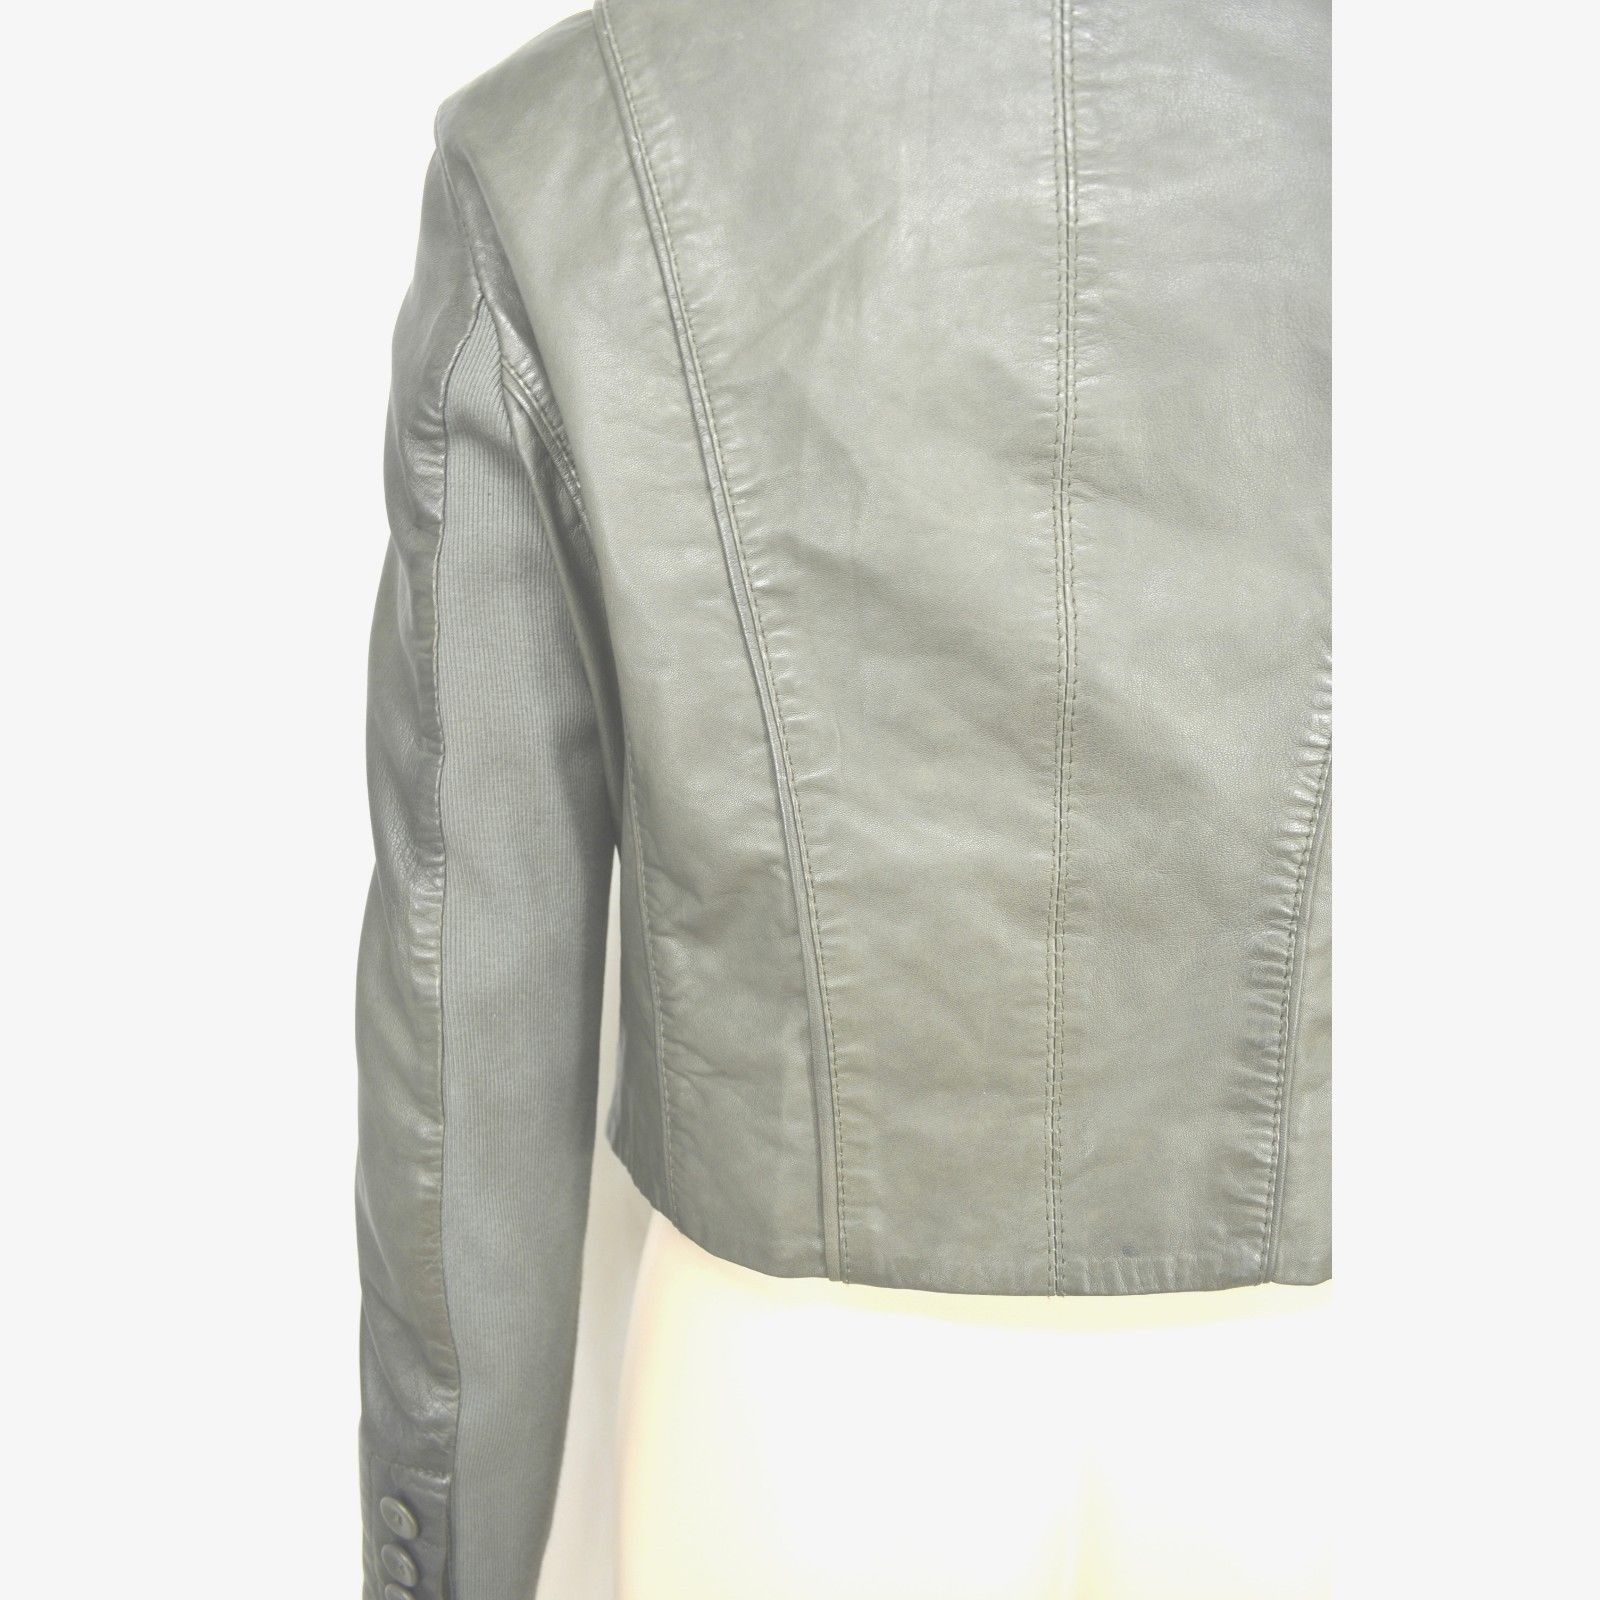 MUUBAA lambskin soft leather jacket SZ 8 Moss Army Gray asymmetric buttoned image 10